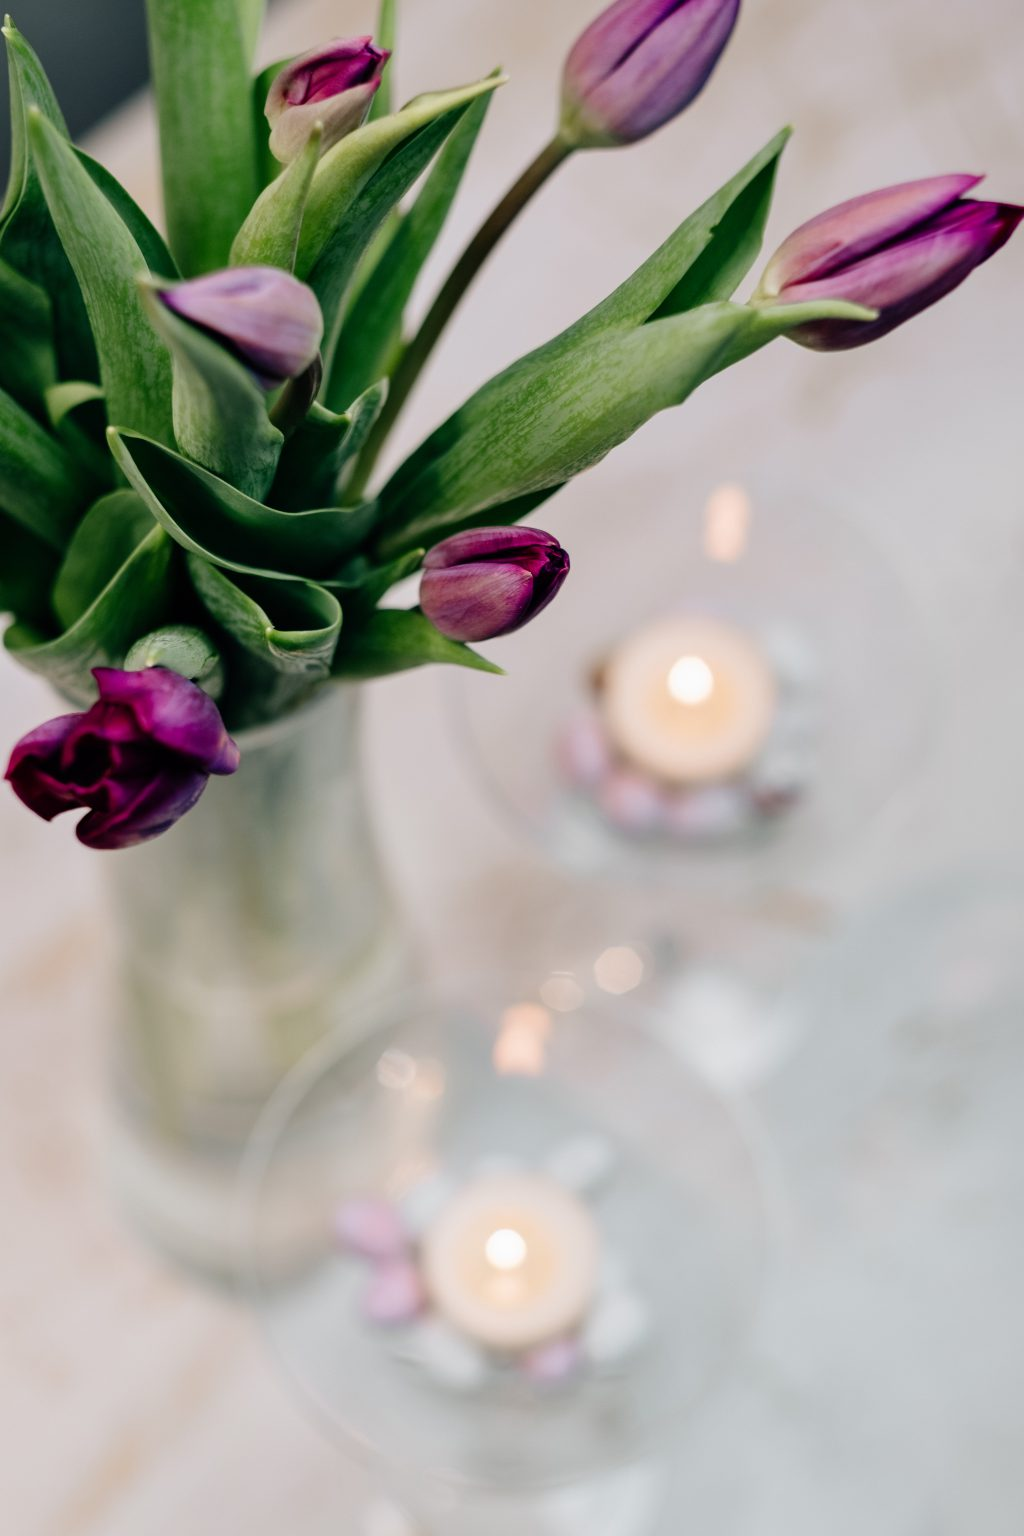 Table candle decoration with purple tulips 4 - free stock photo